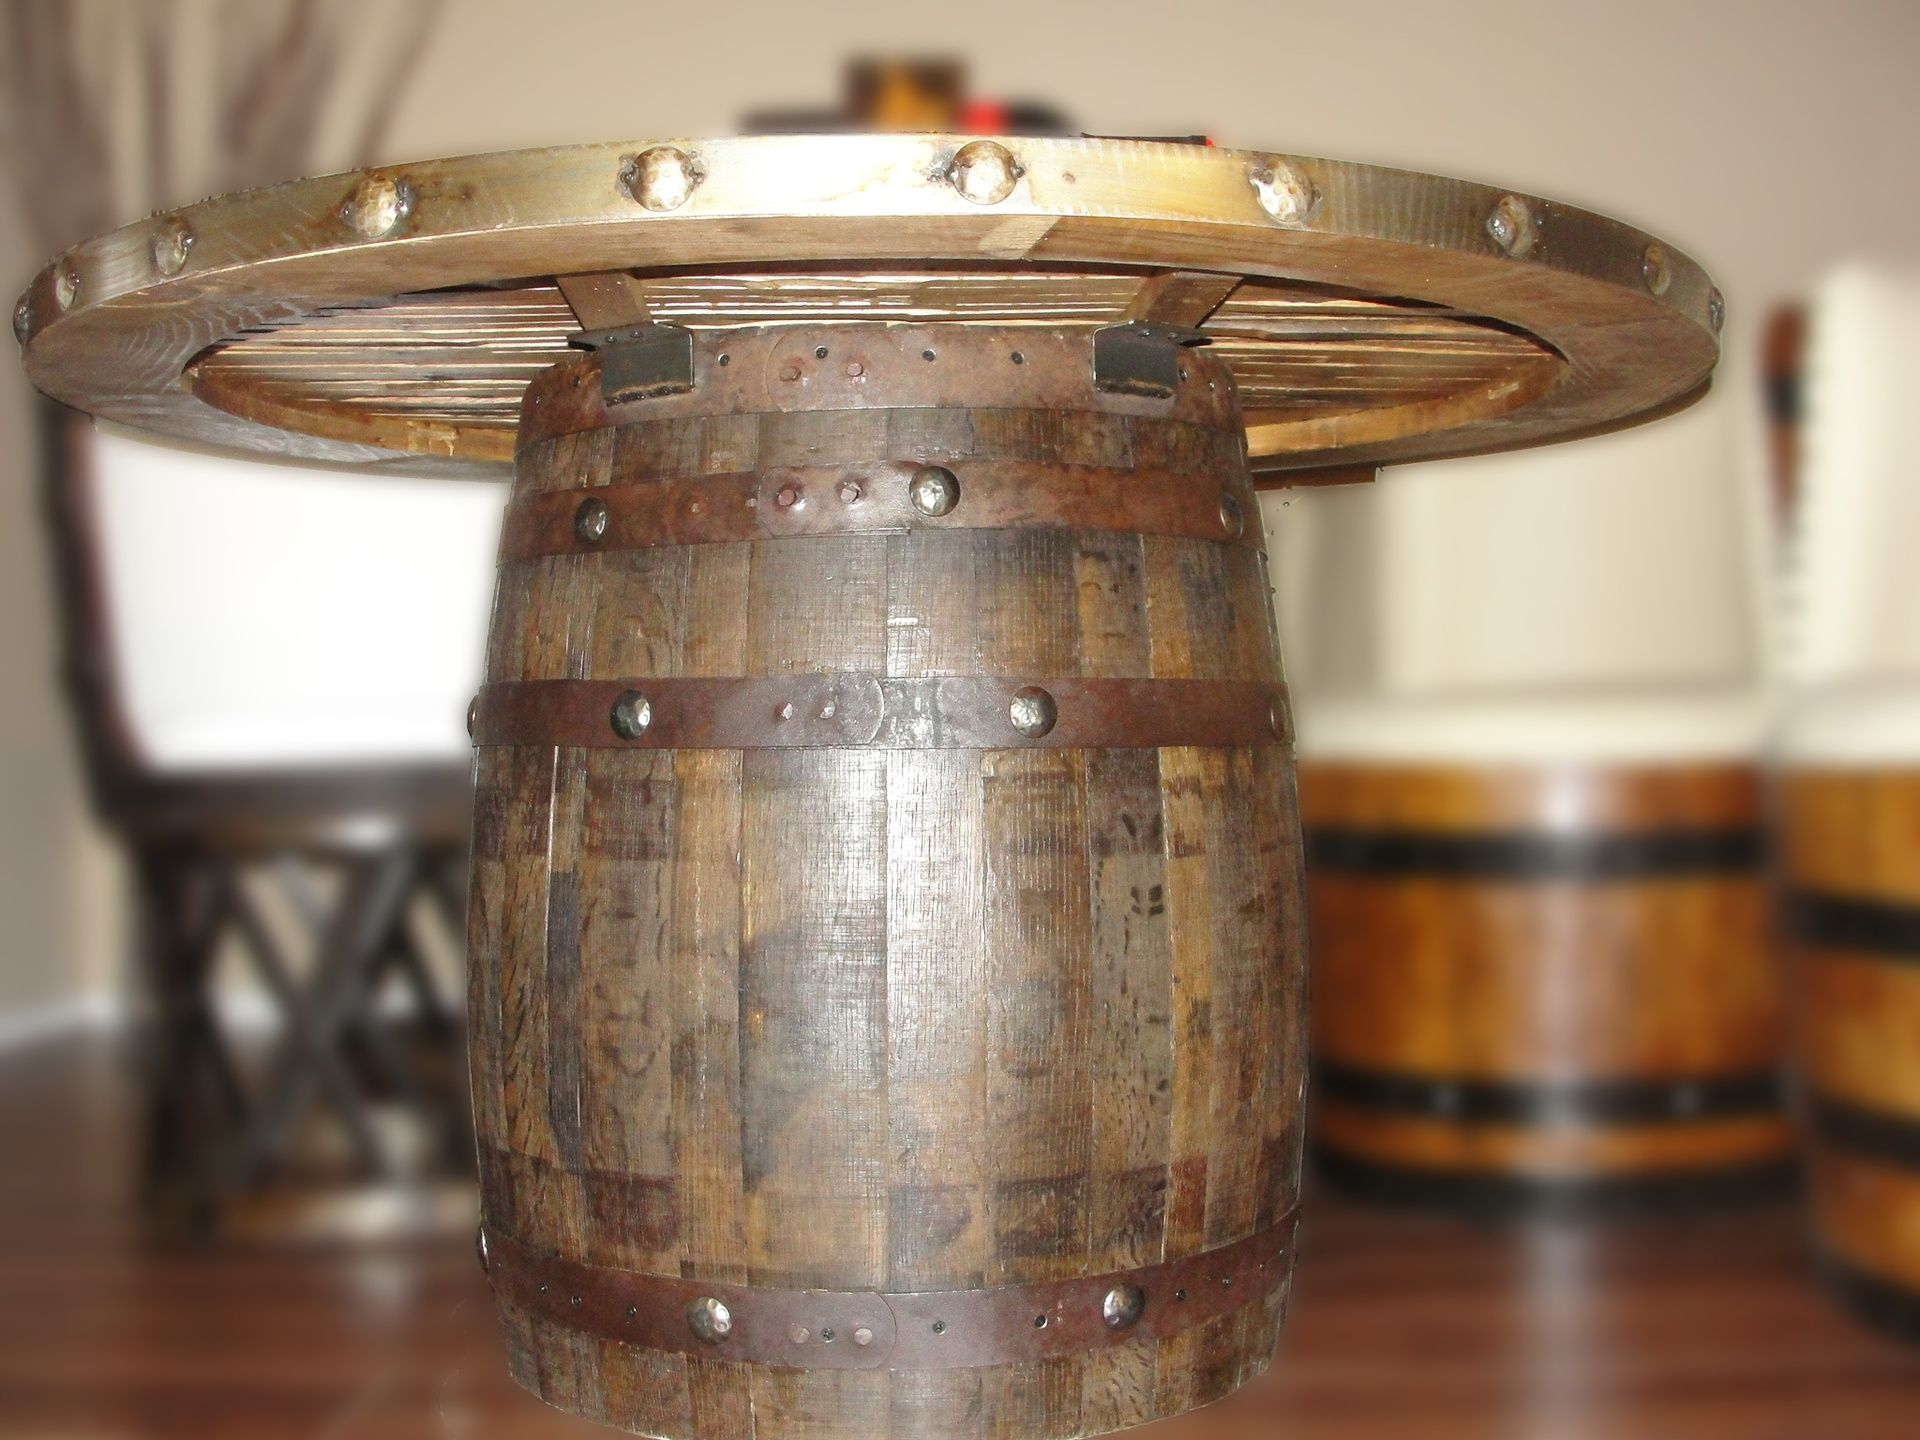 Dining Barrel Table With Table Top Made With Barrel Staves